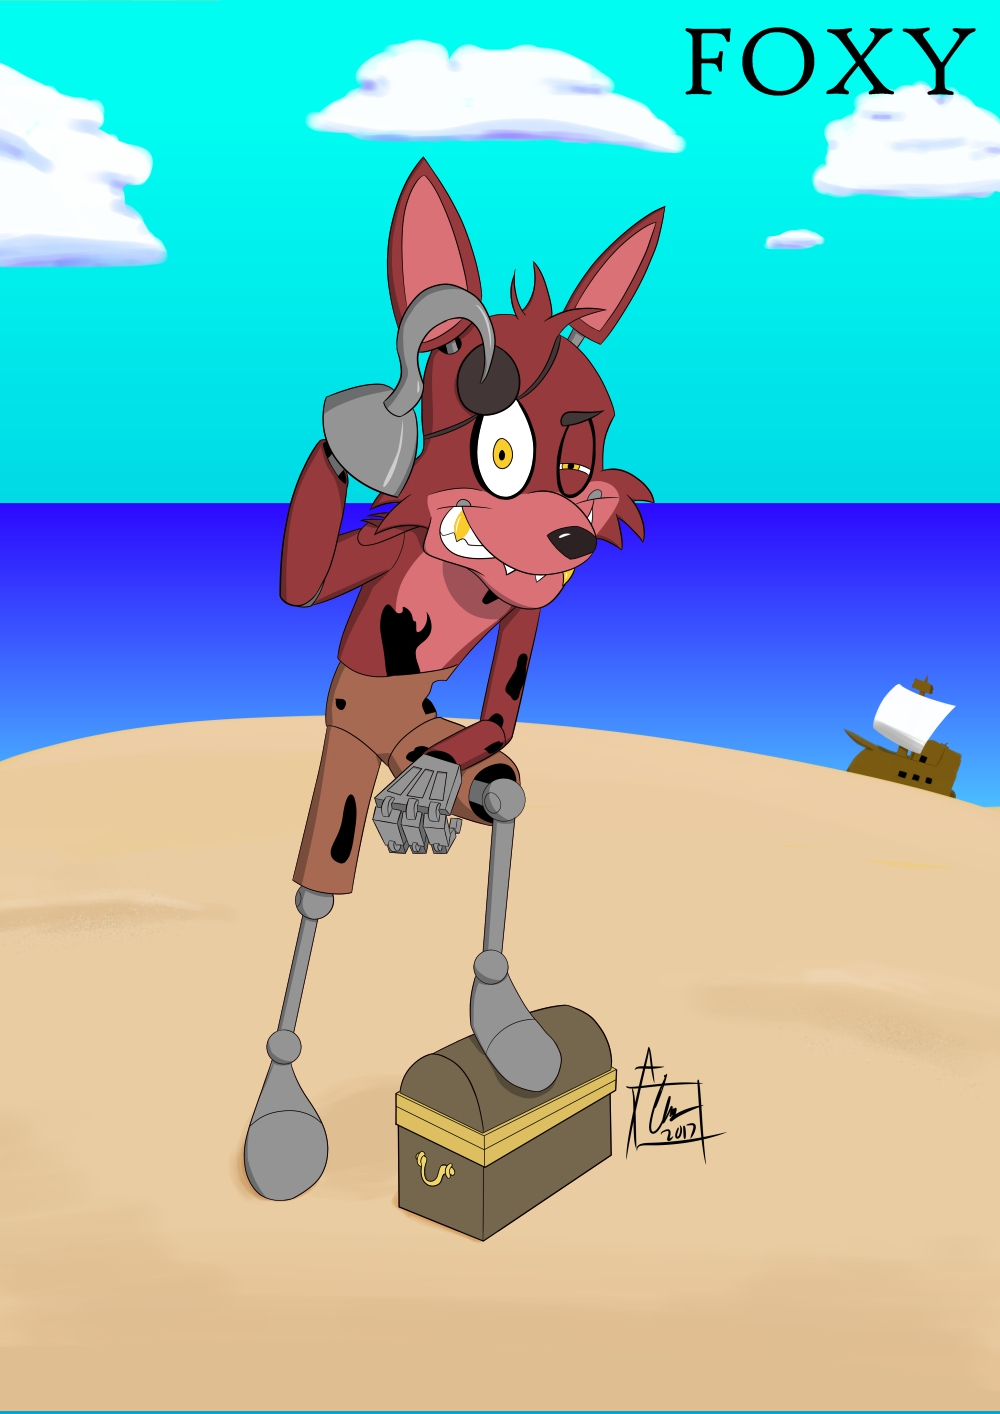 Five Nights at Freddy's - Foxy the Pirate